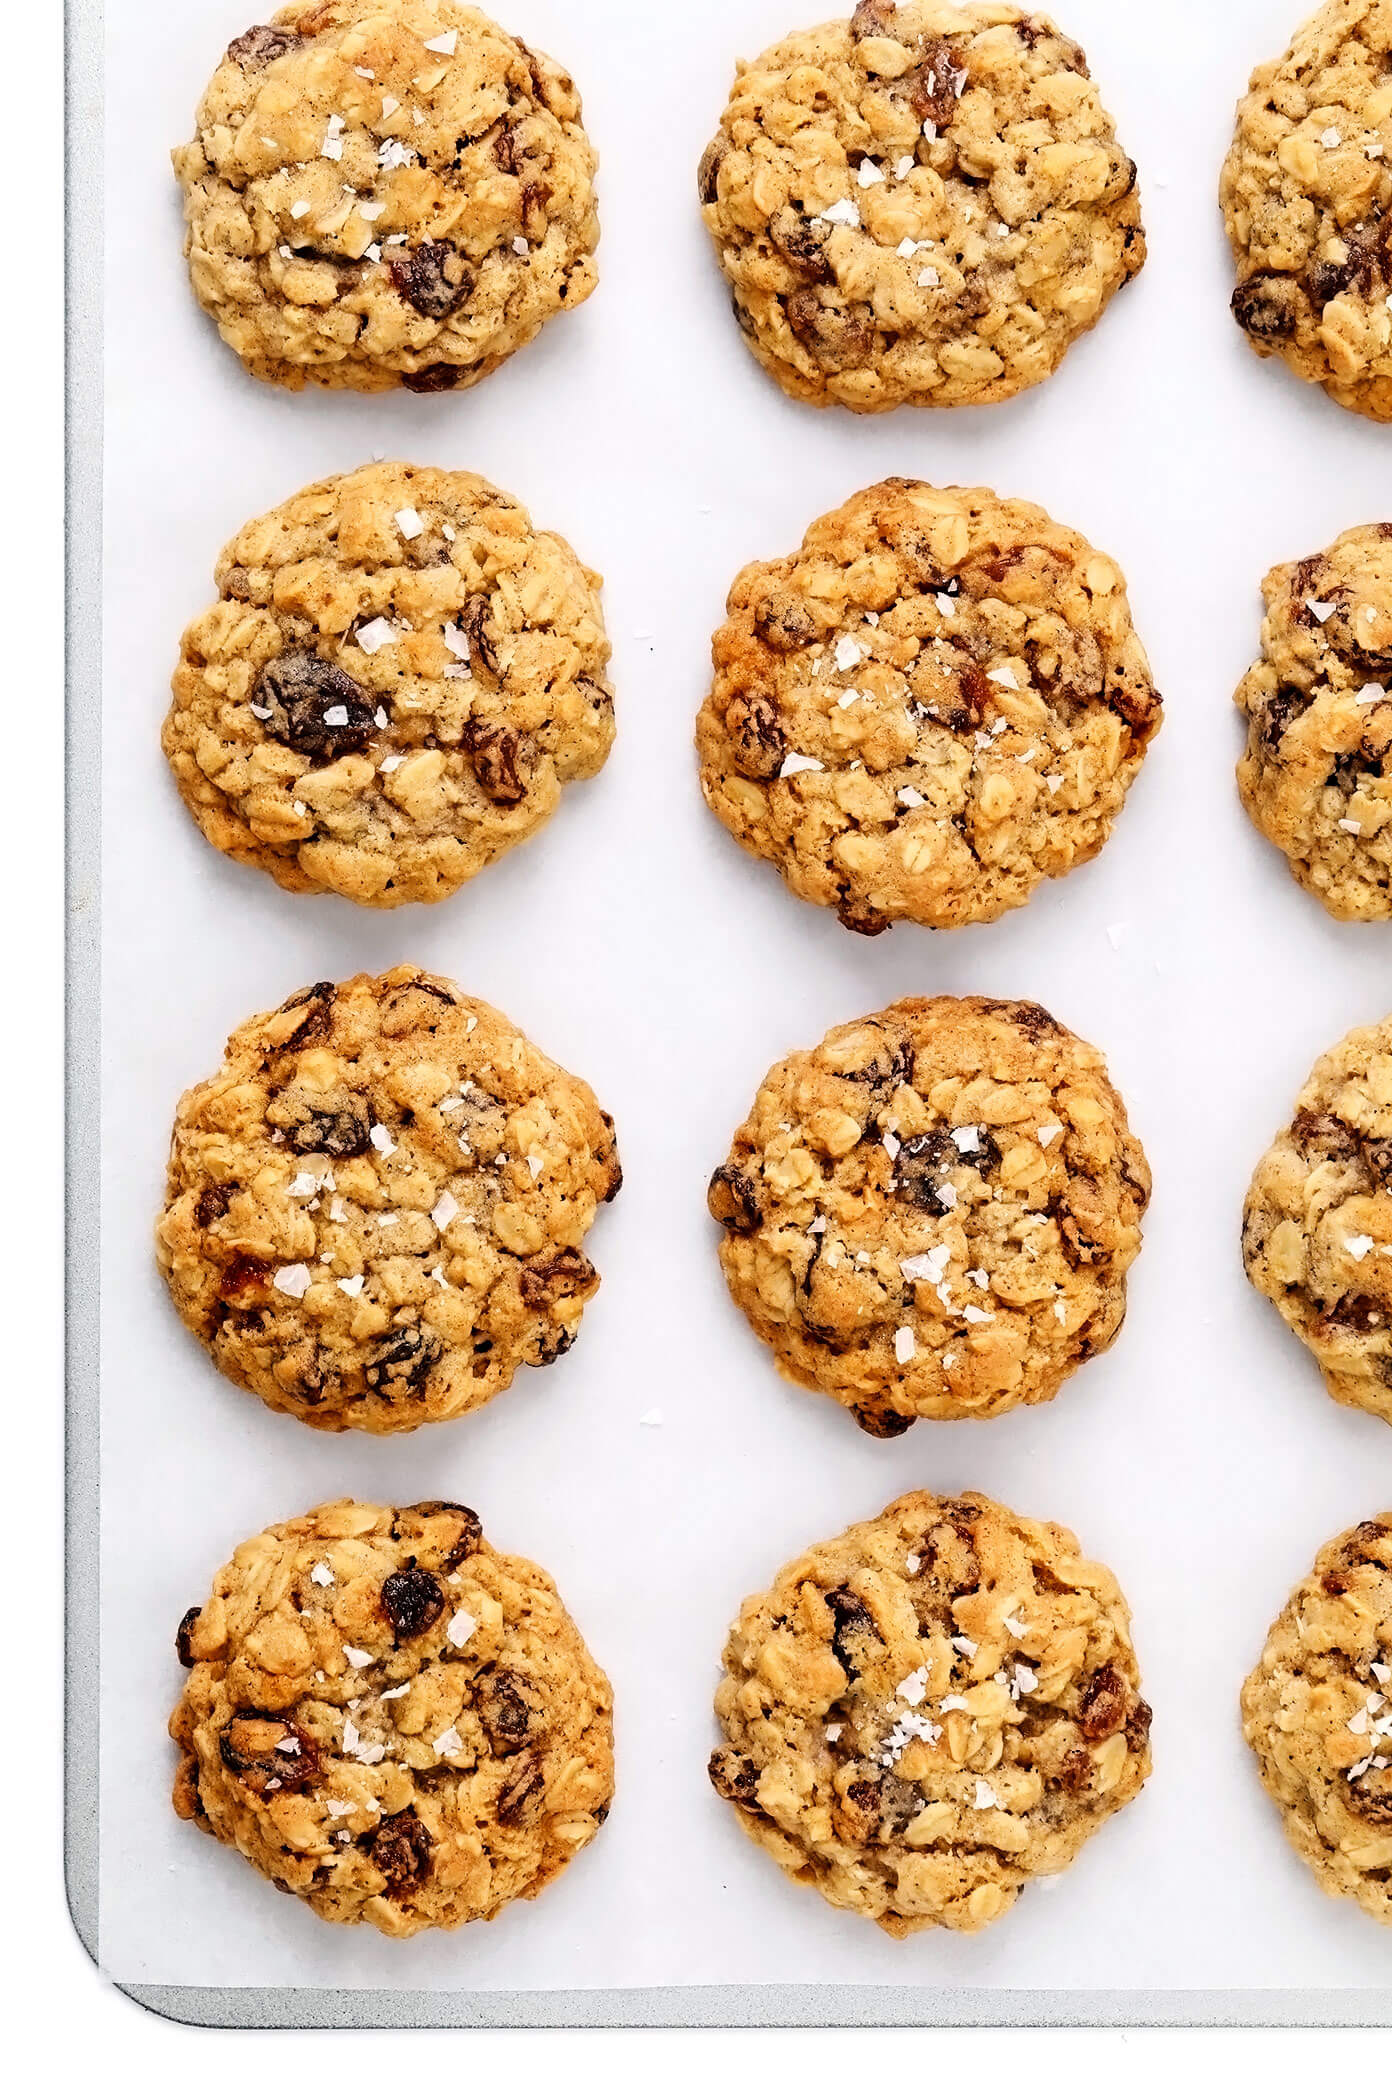 Oatmeal Cookies on Sheet Pan